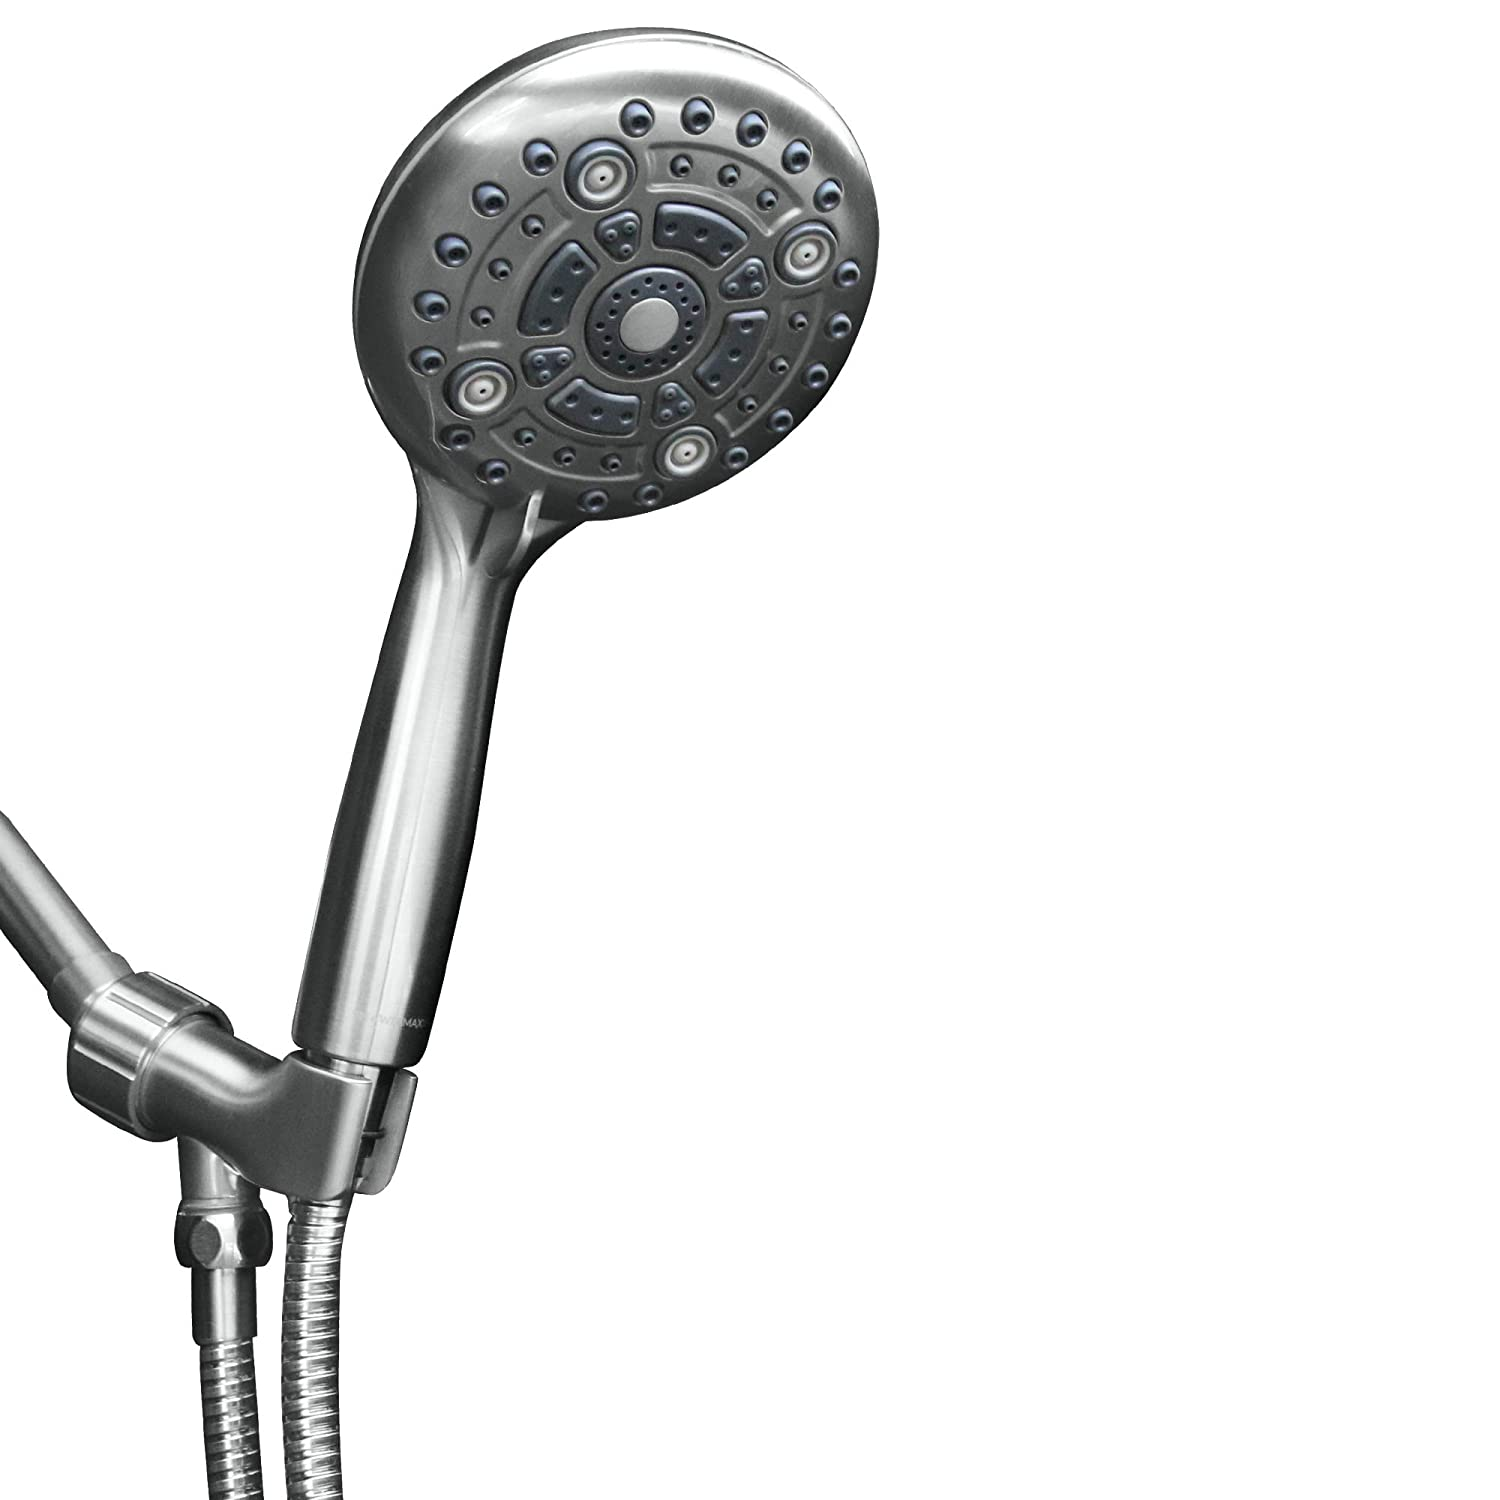 ShowerMaxx | Elite Series | 6 Spray Settings 5 inch Hand Held Shower Head | Extra Long Stainless Steel Hose |MAXX-imize with Easy-to-Remove Flow Restrictor Handheld Showerhead | Polished Chrome Finish